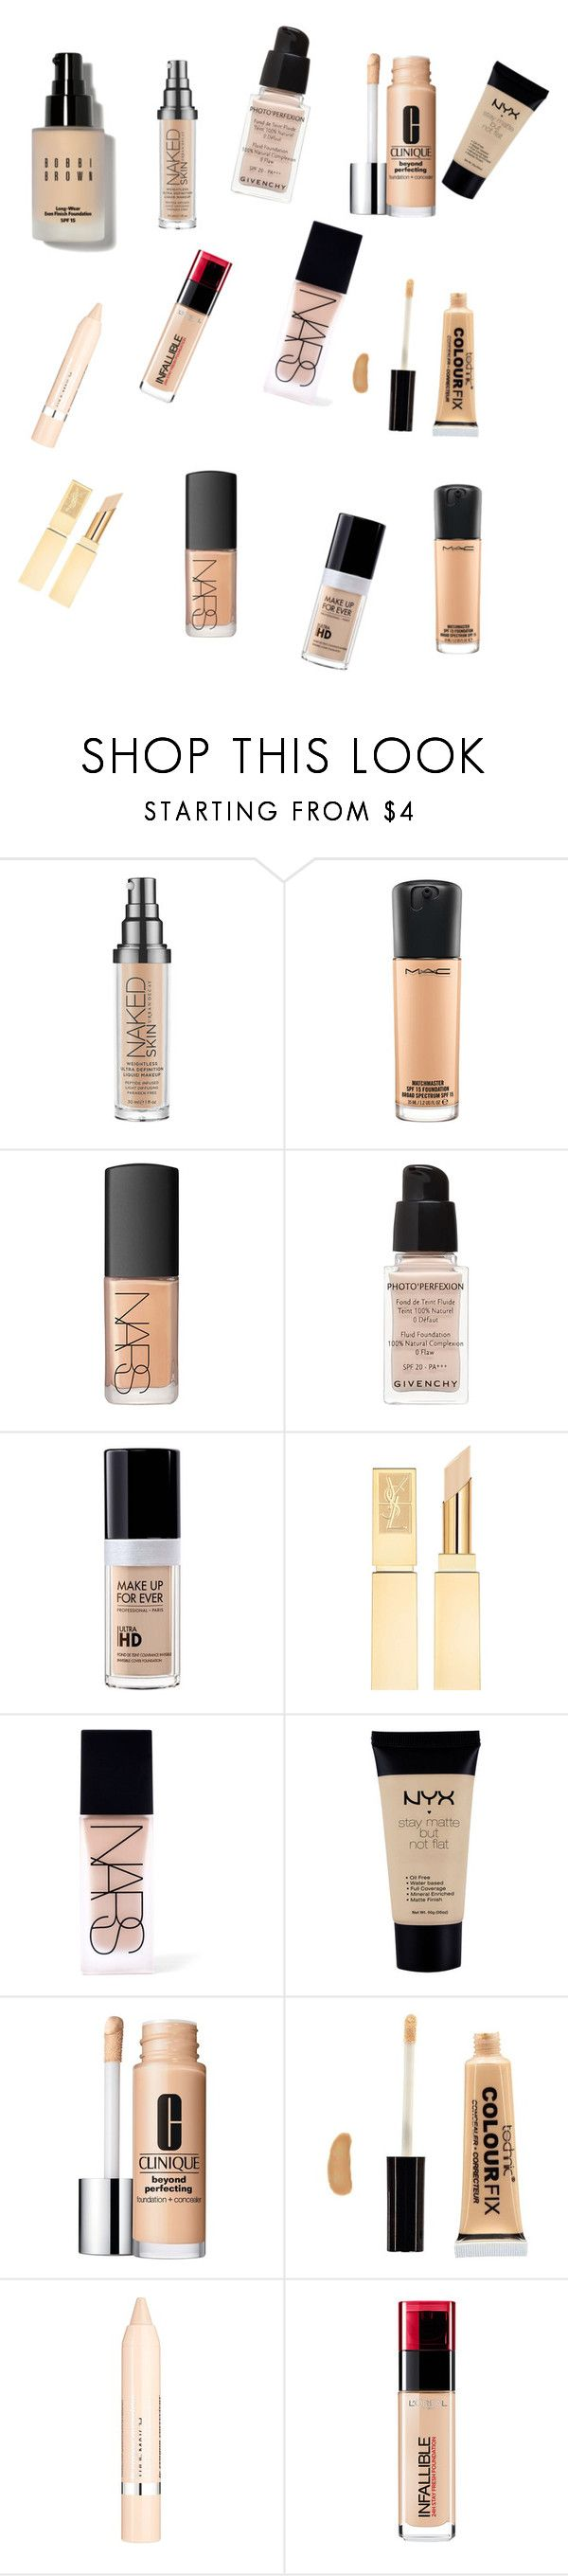 """Fav foundation and concealer 2015"" by richierich716 ❤ liked on Polyvore featuring beauty, Urban Decay, MAC Cosmetics, NARS Cosmetics, Givenchy, MAKE UP FOR EVER, NYX, Clinique, Boohoo and L'Oréal Paris"